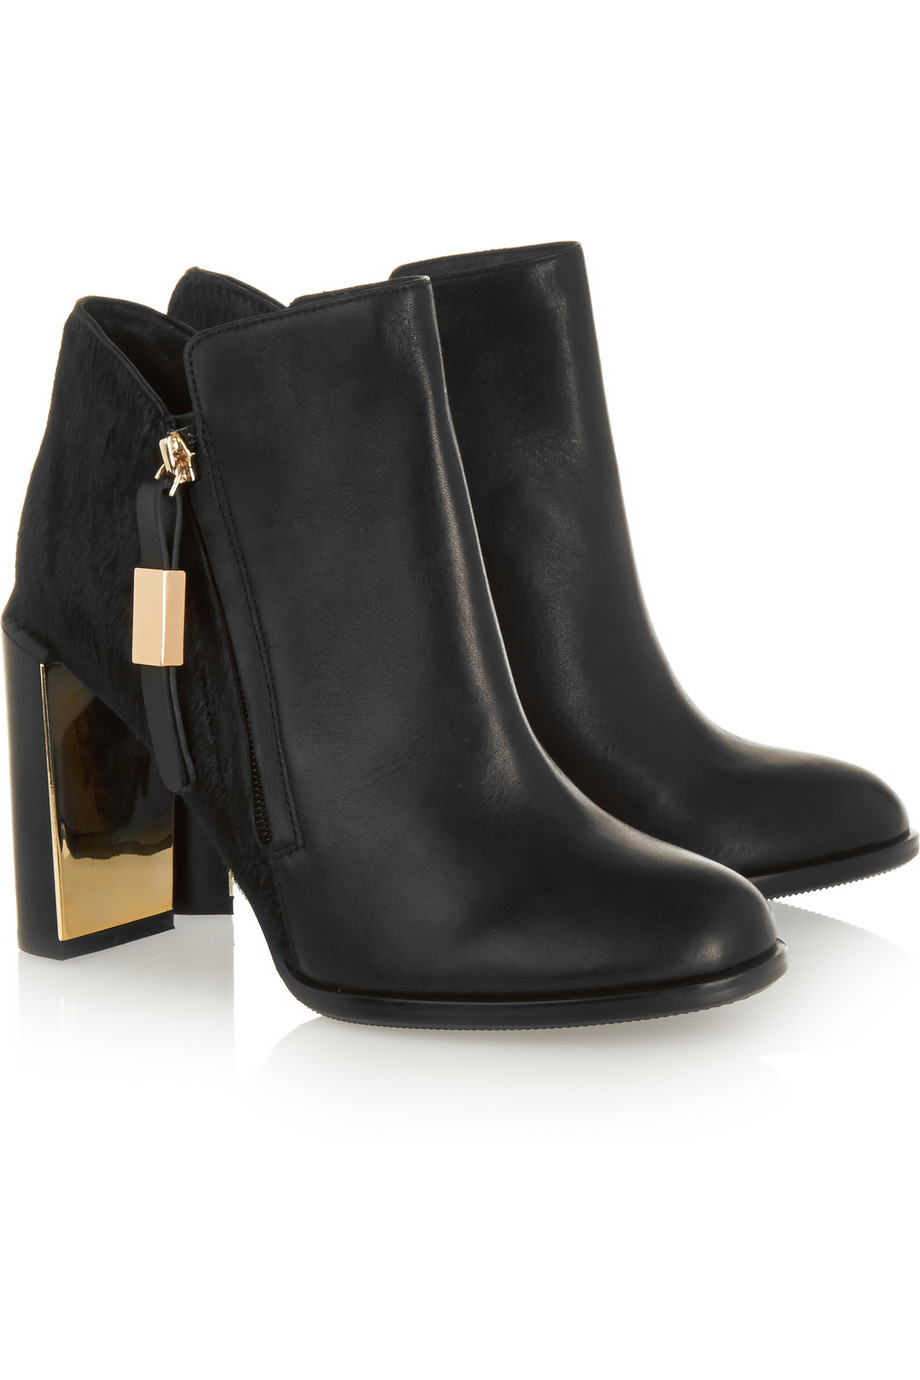 15 Black Ankle Boots Under $500 - Fall's Best Black Ankle Boots